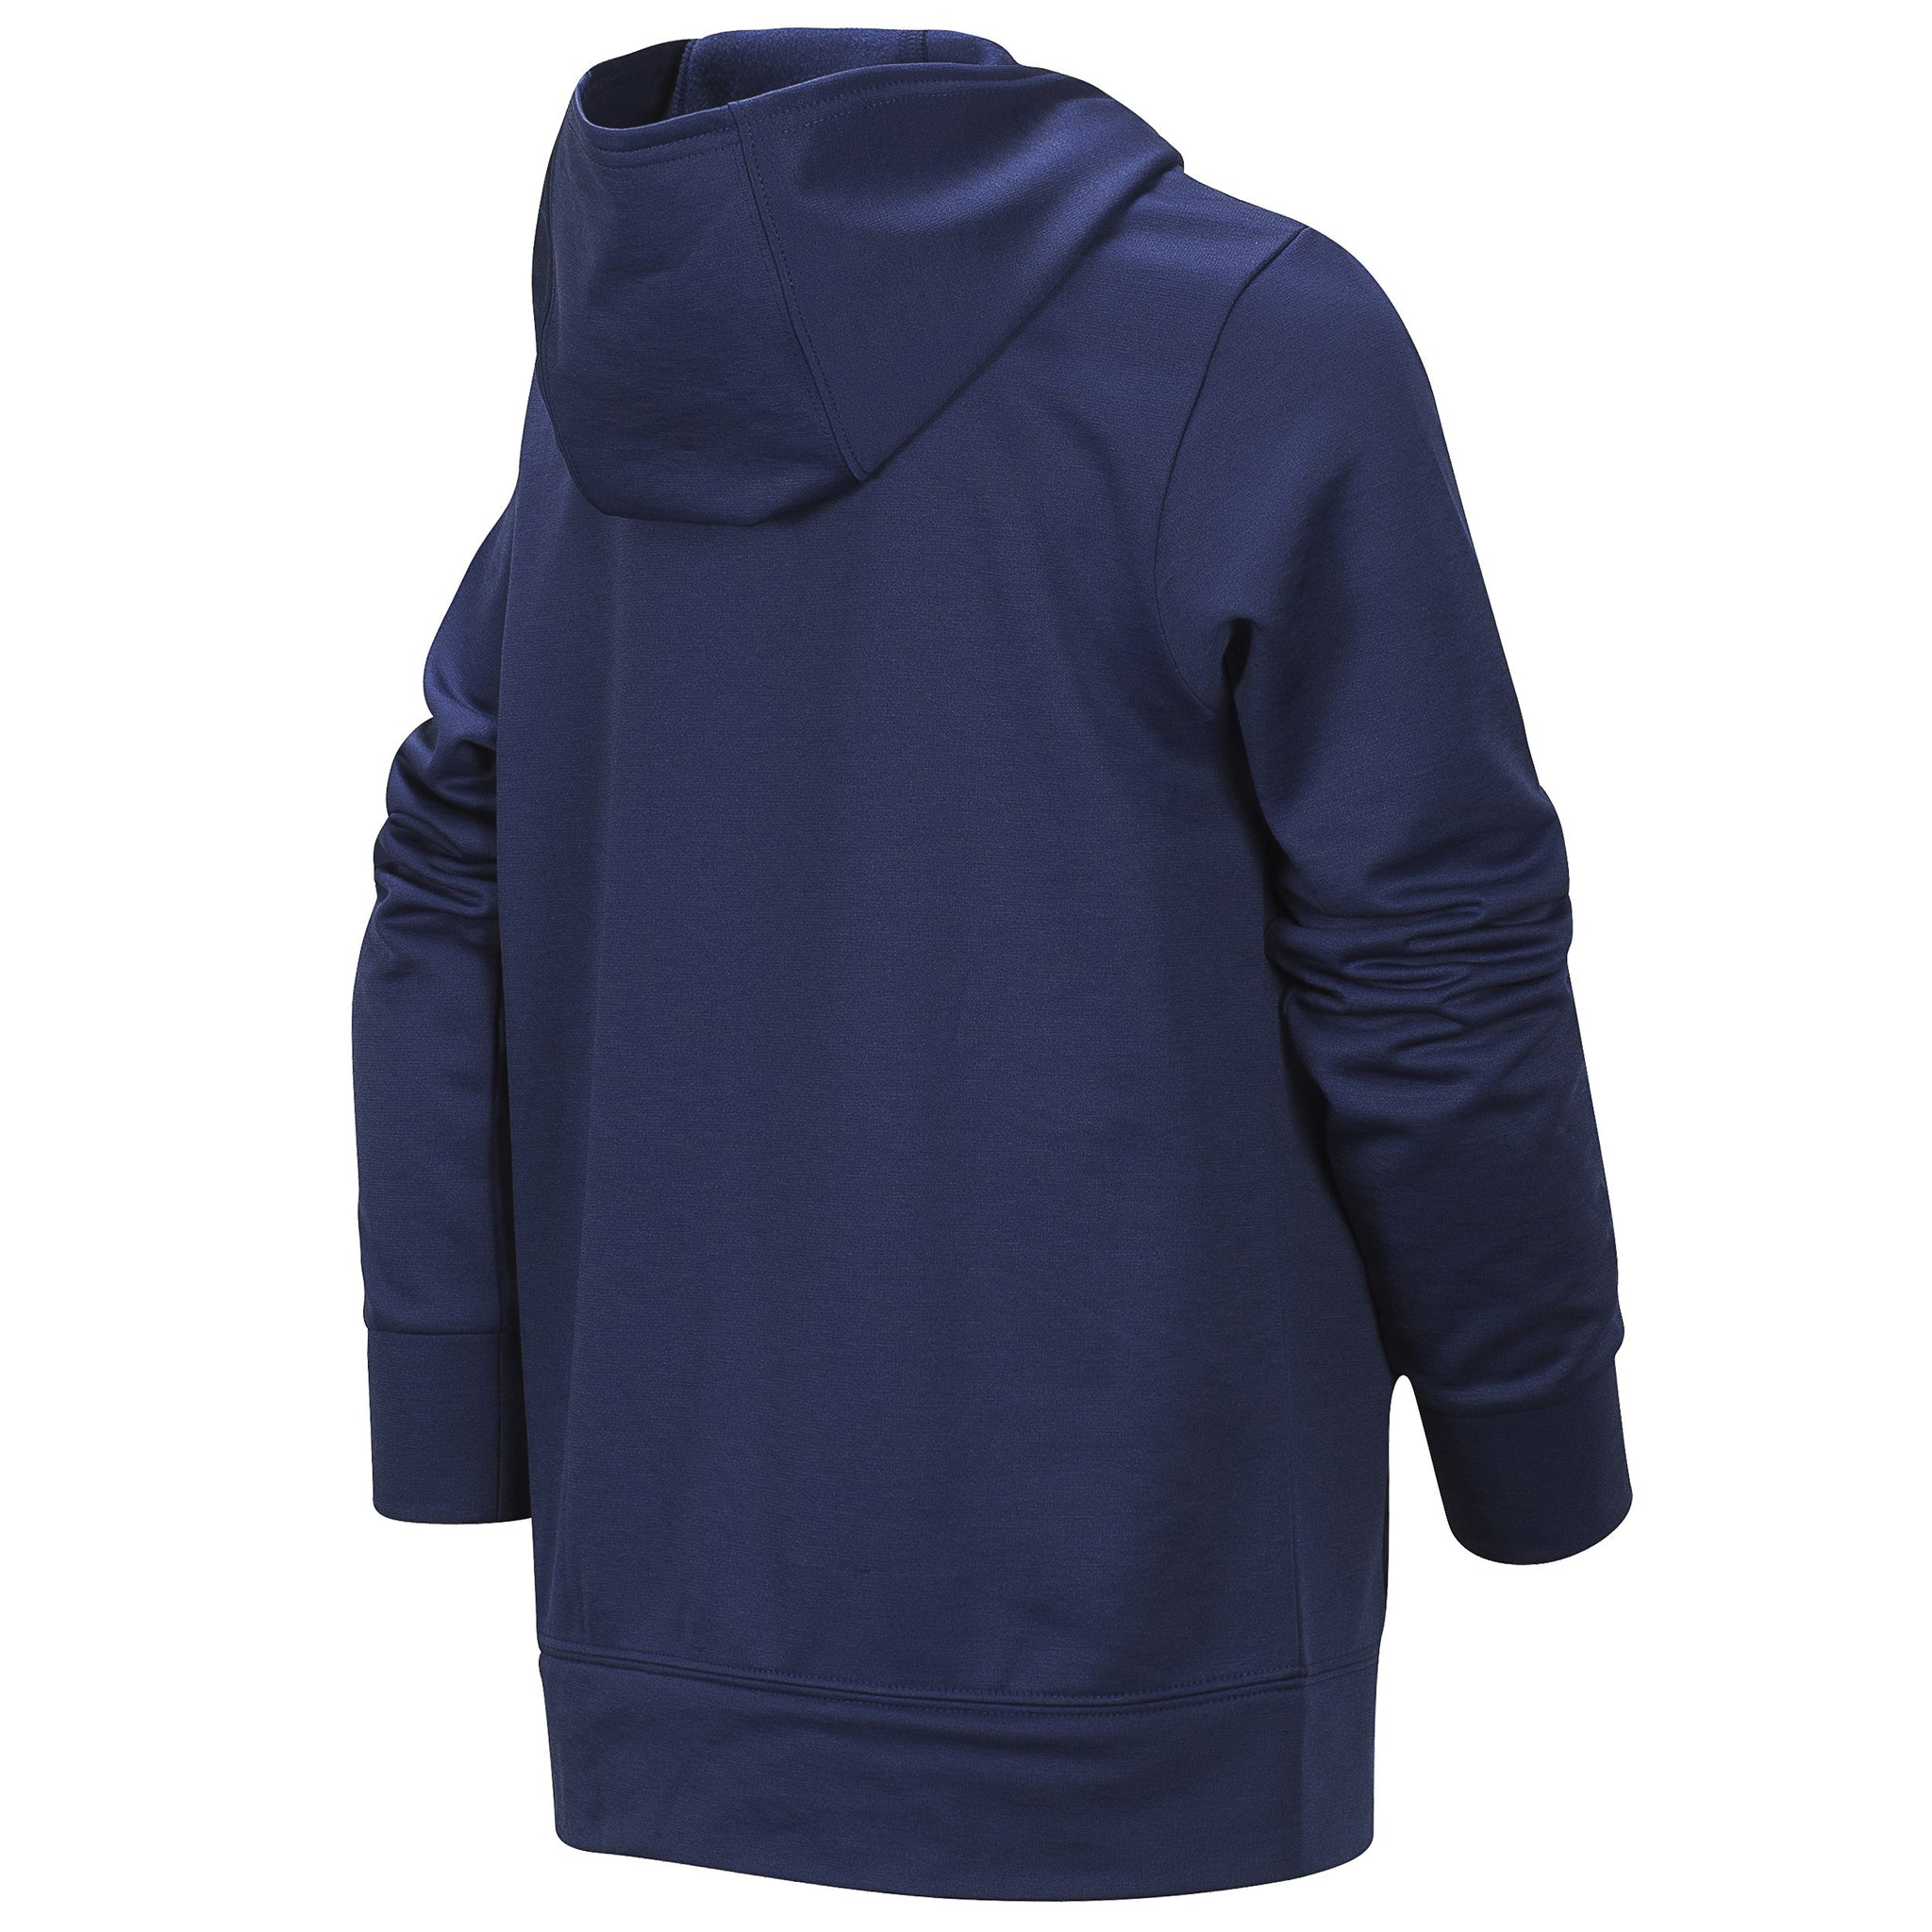 Boys' Techtonic Blue Graphic Hoodie